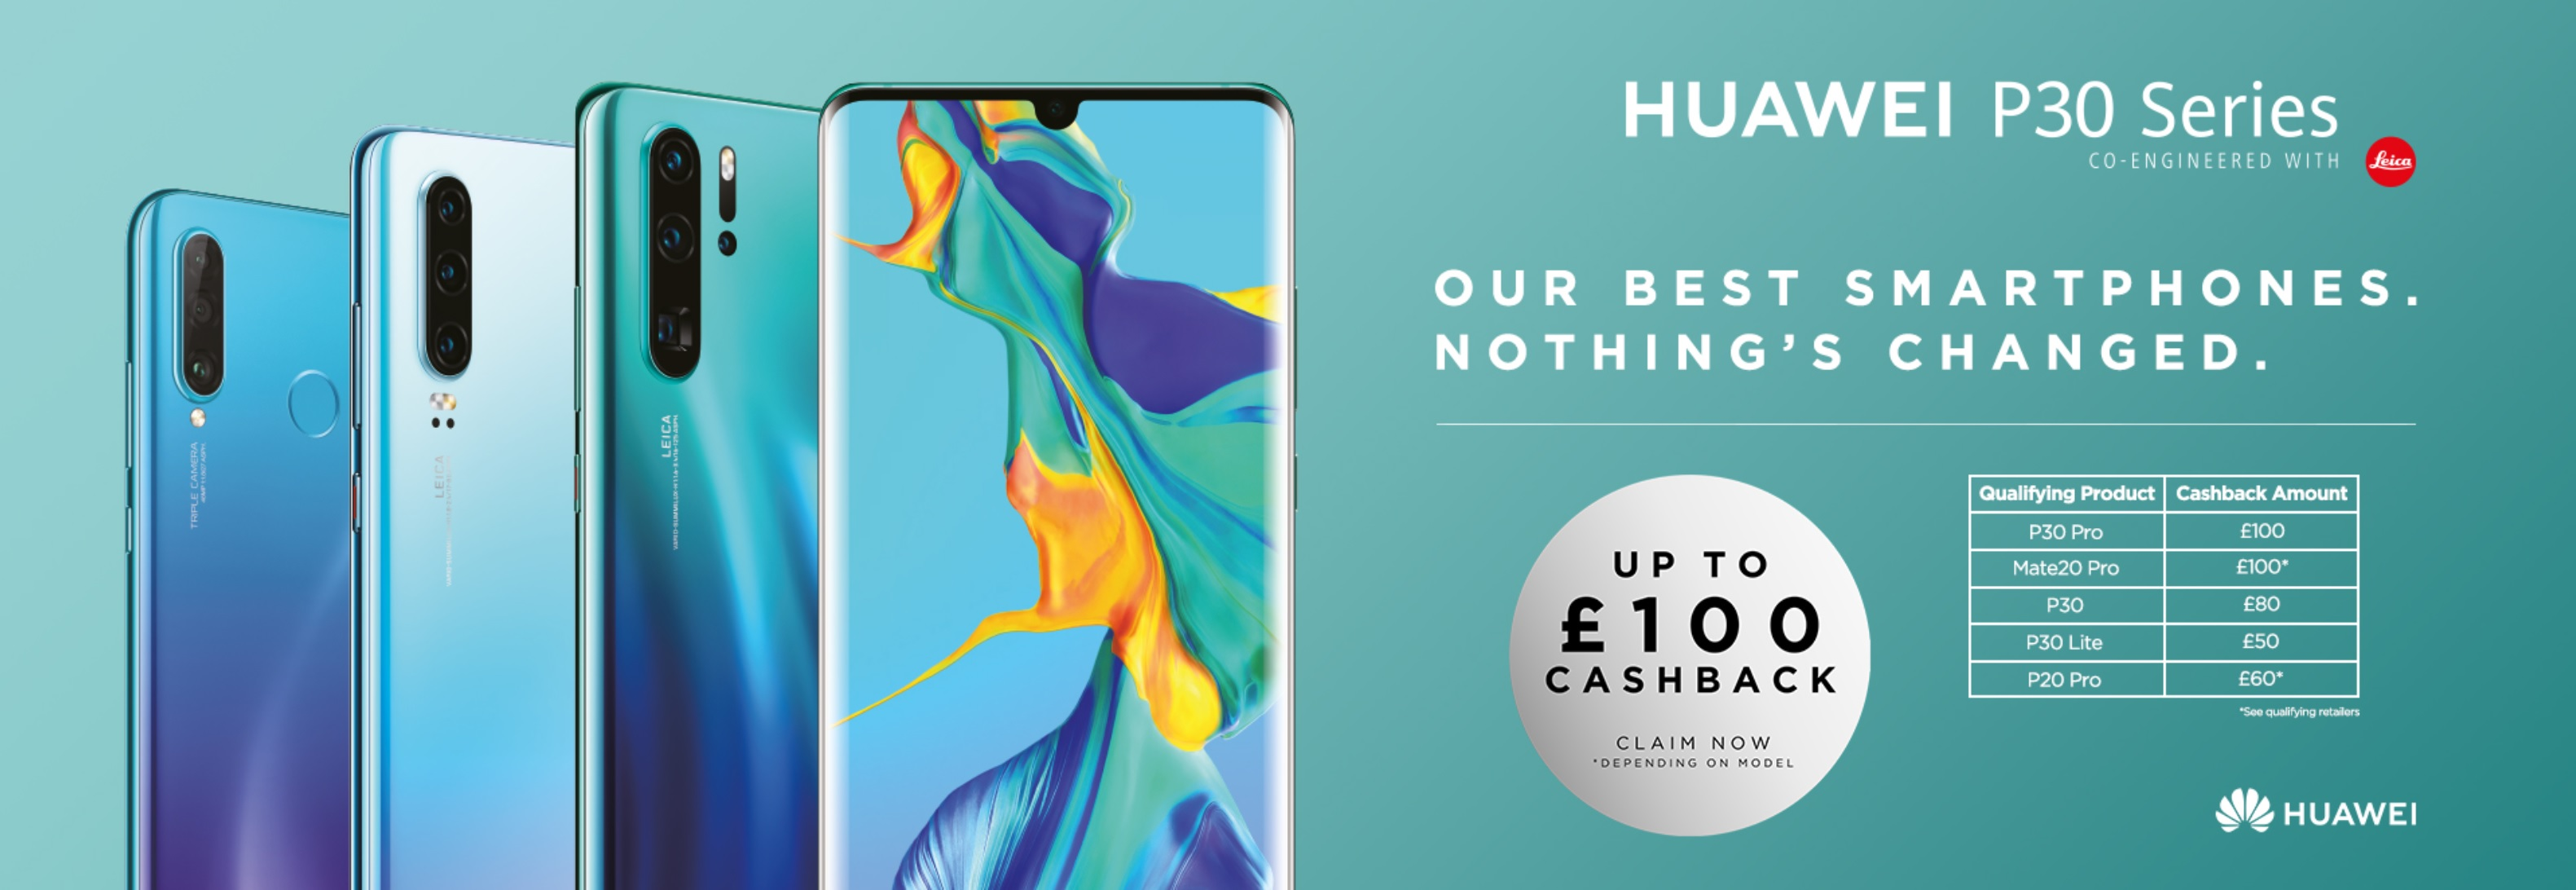 Up to £100 Cashback from Huawei with selected P30, P30 Pro, Mate 20 Pro, P30 Lite and P20 Pro contract deals